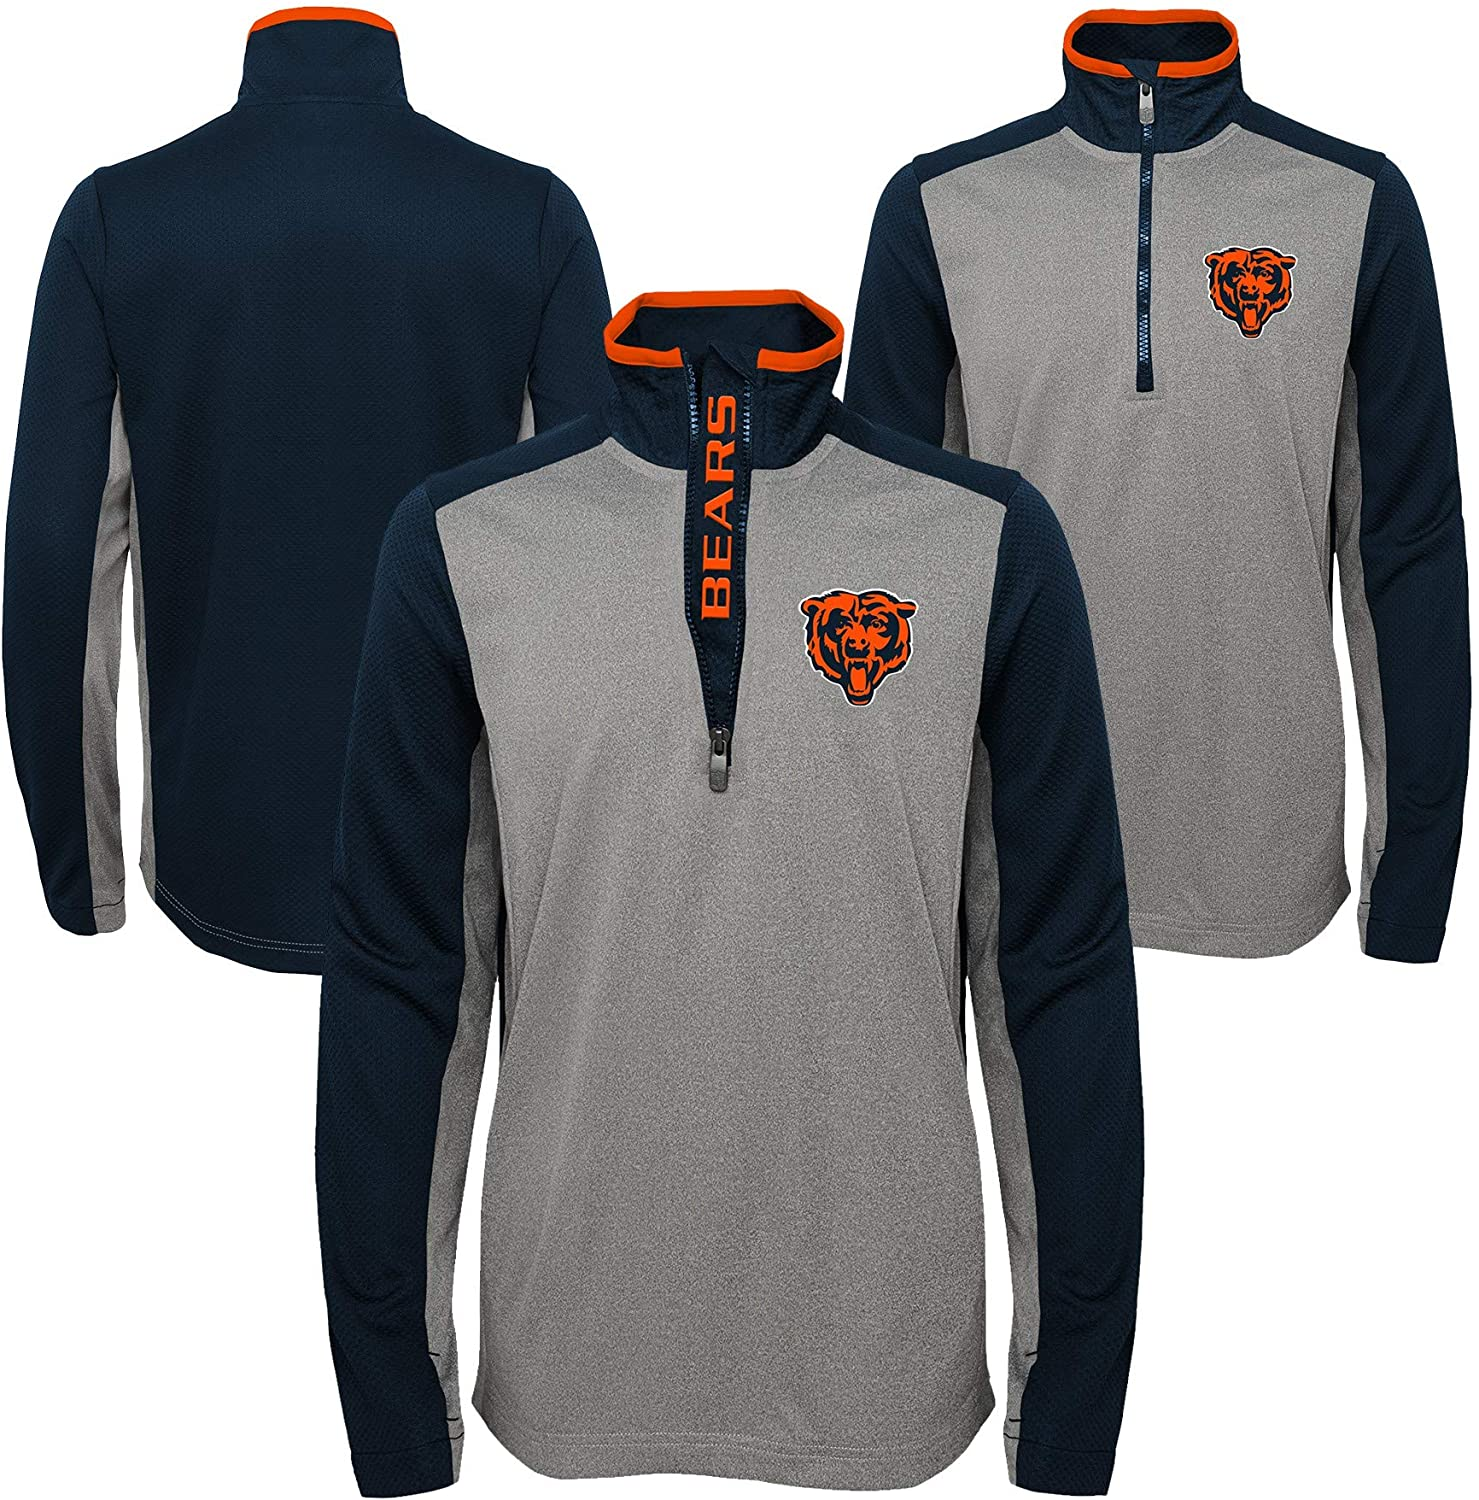 Outerstuff NFL Youth Boys Chicago Bears Matrix 1/4 Zip Top, X-Large